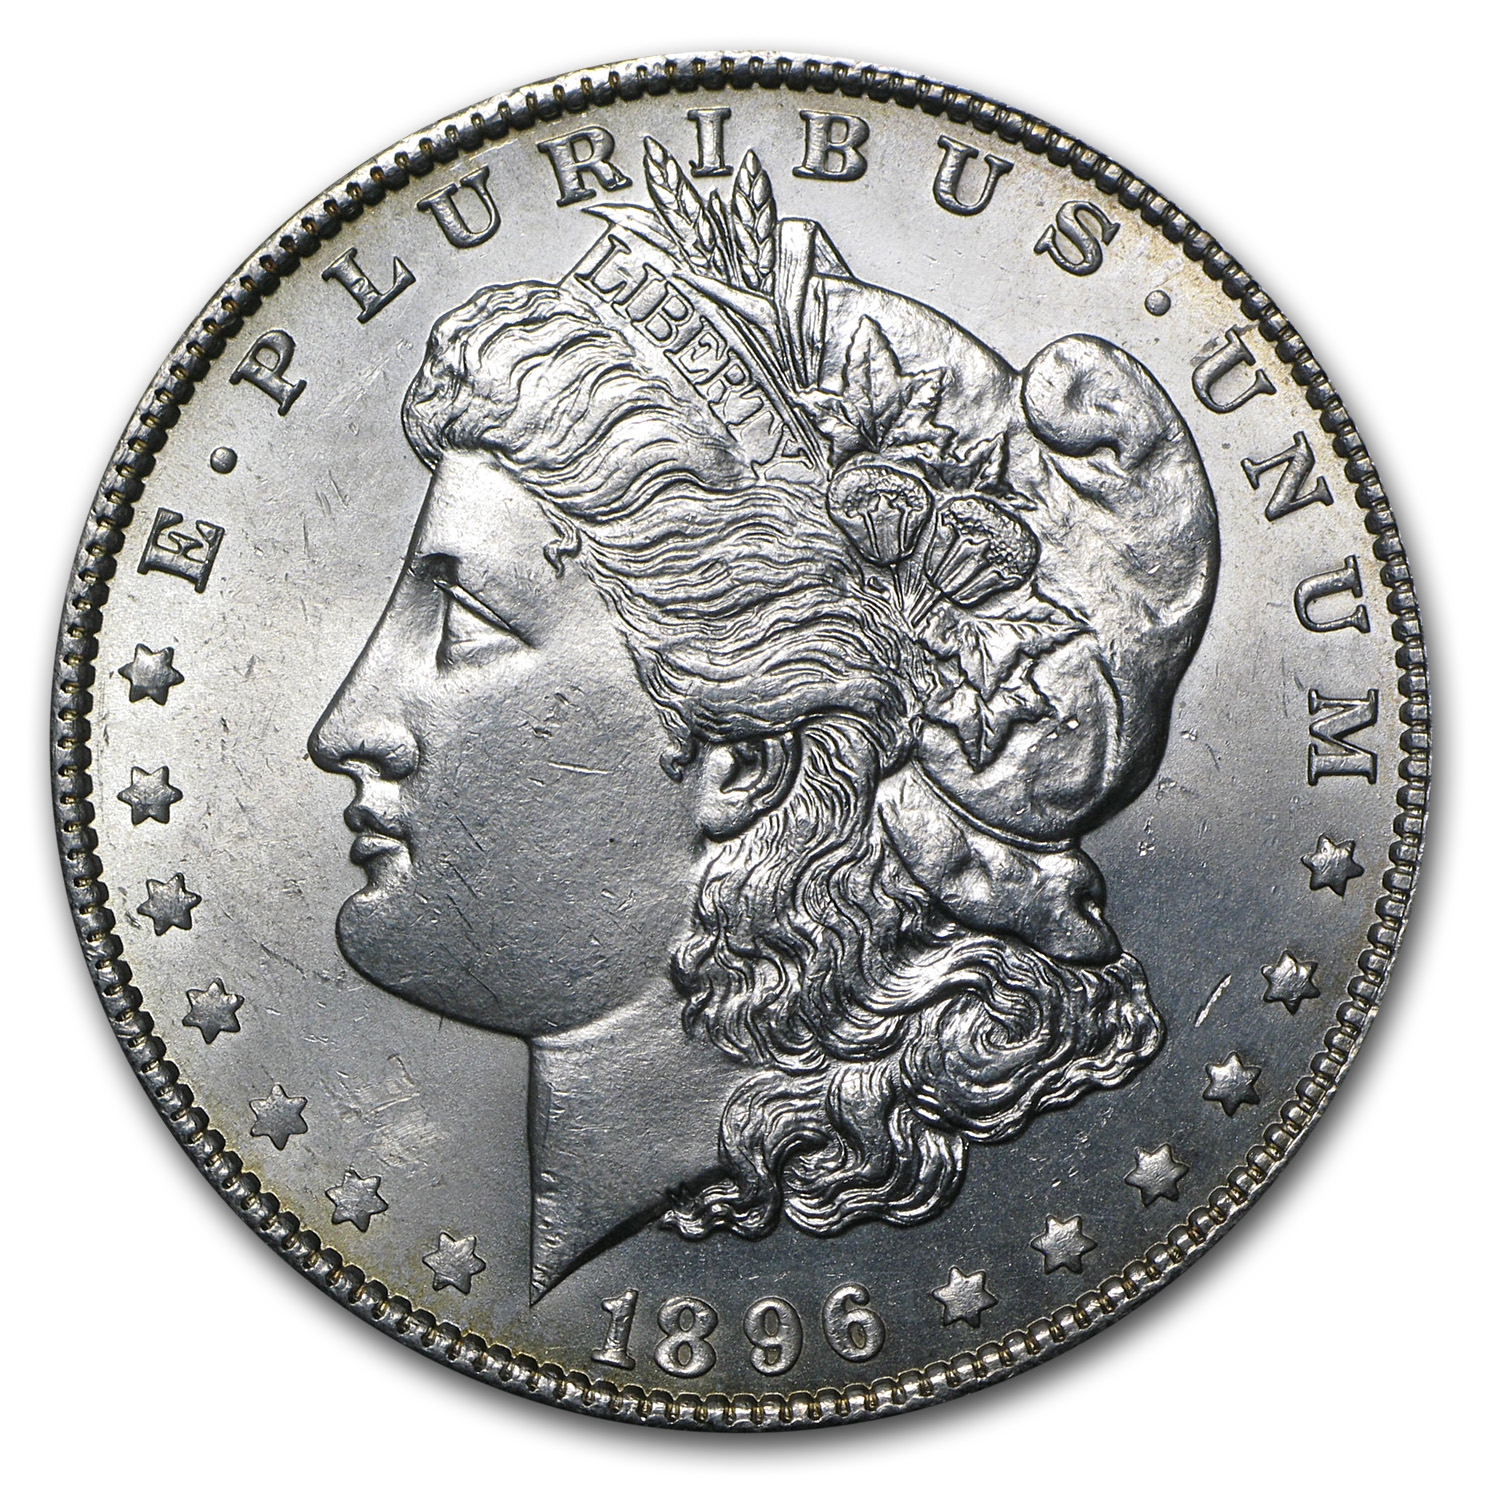 1896 Morgan Dollar - Brilliant Uncirculated